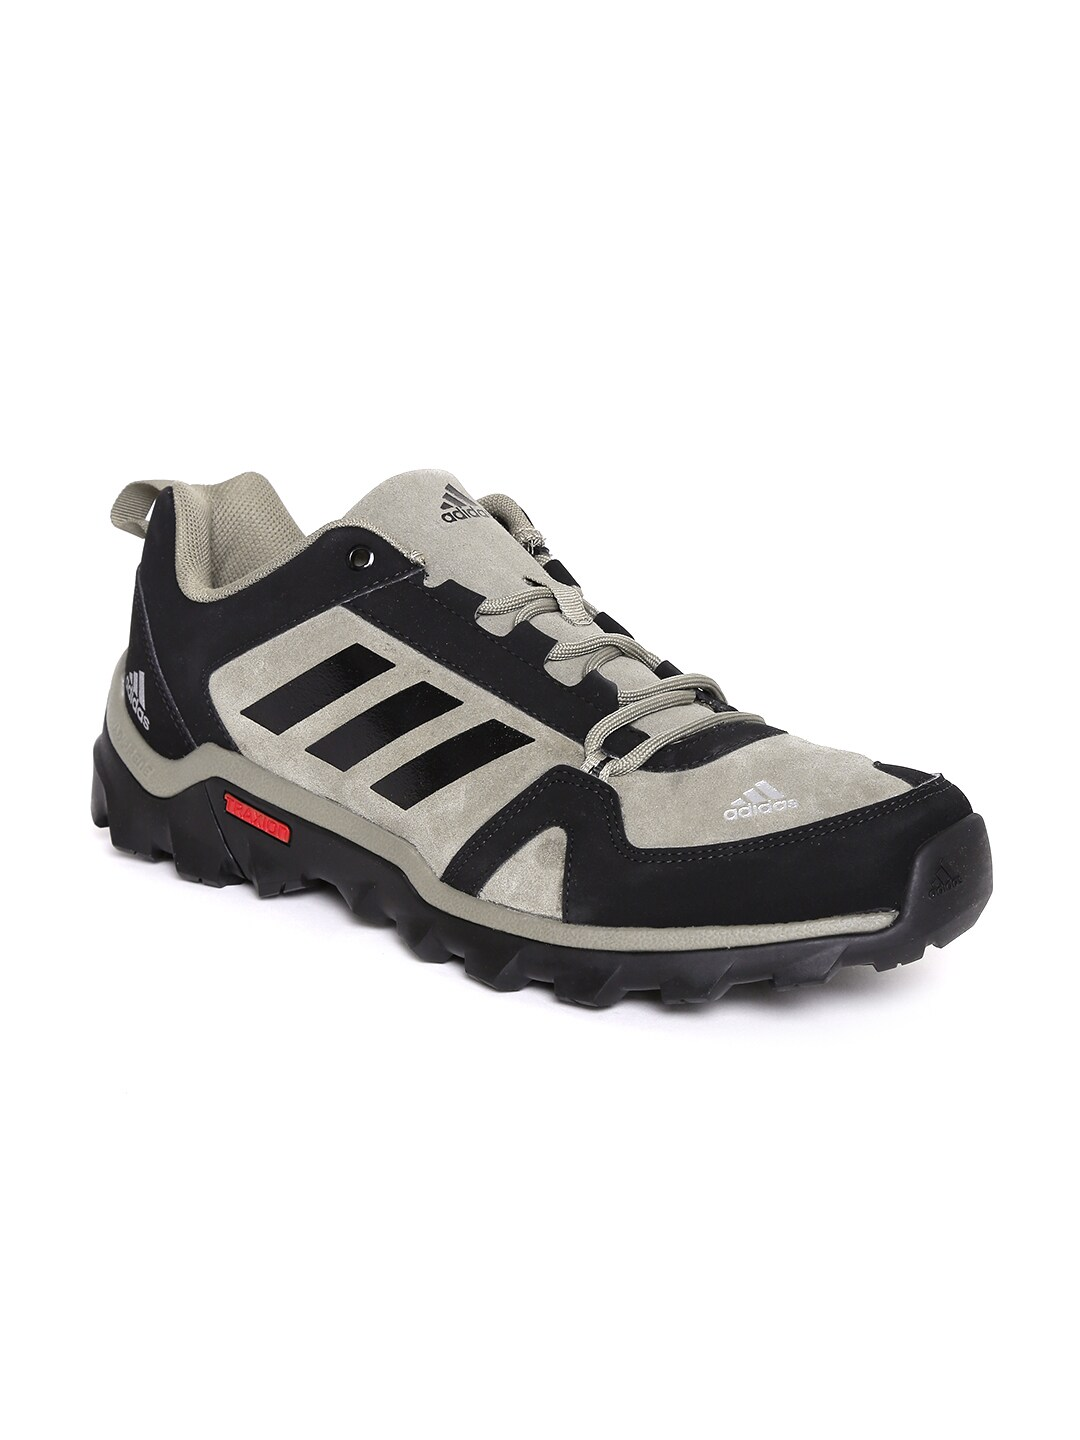 Backpacks Adidas And Hat Skirts Sports Shoes - Buy Backpacks Adidas And Hat  Skirts Sports Shoes online in India 5989018f9bec